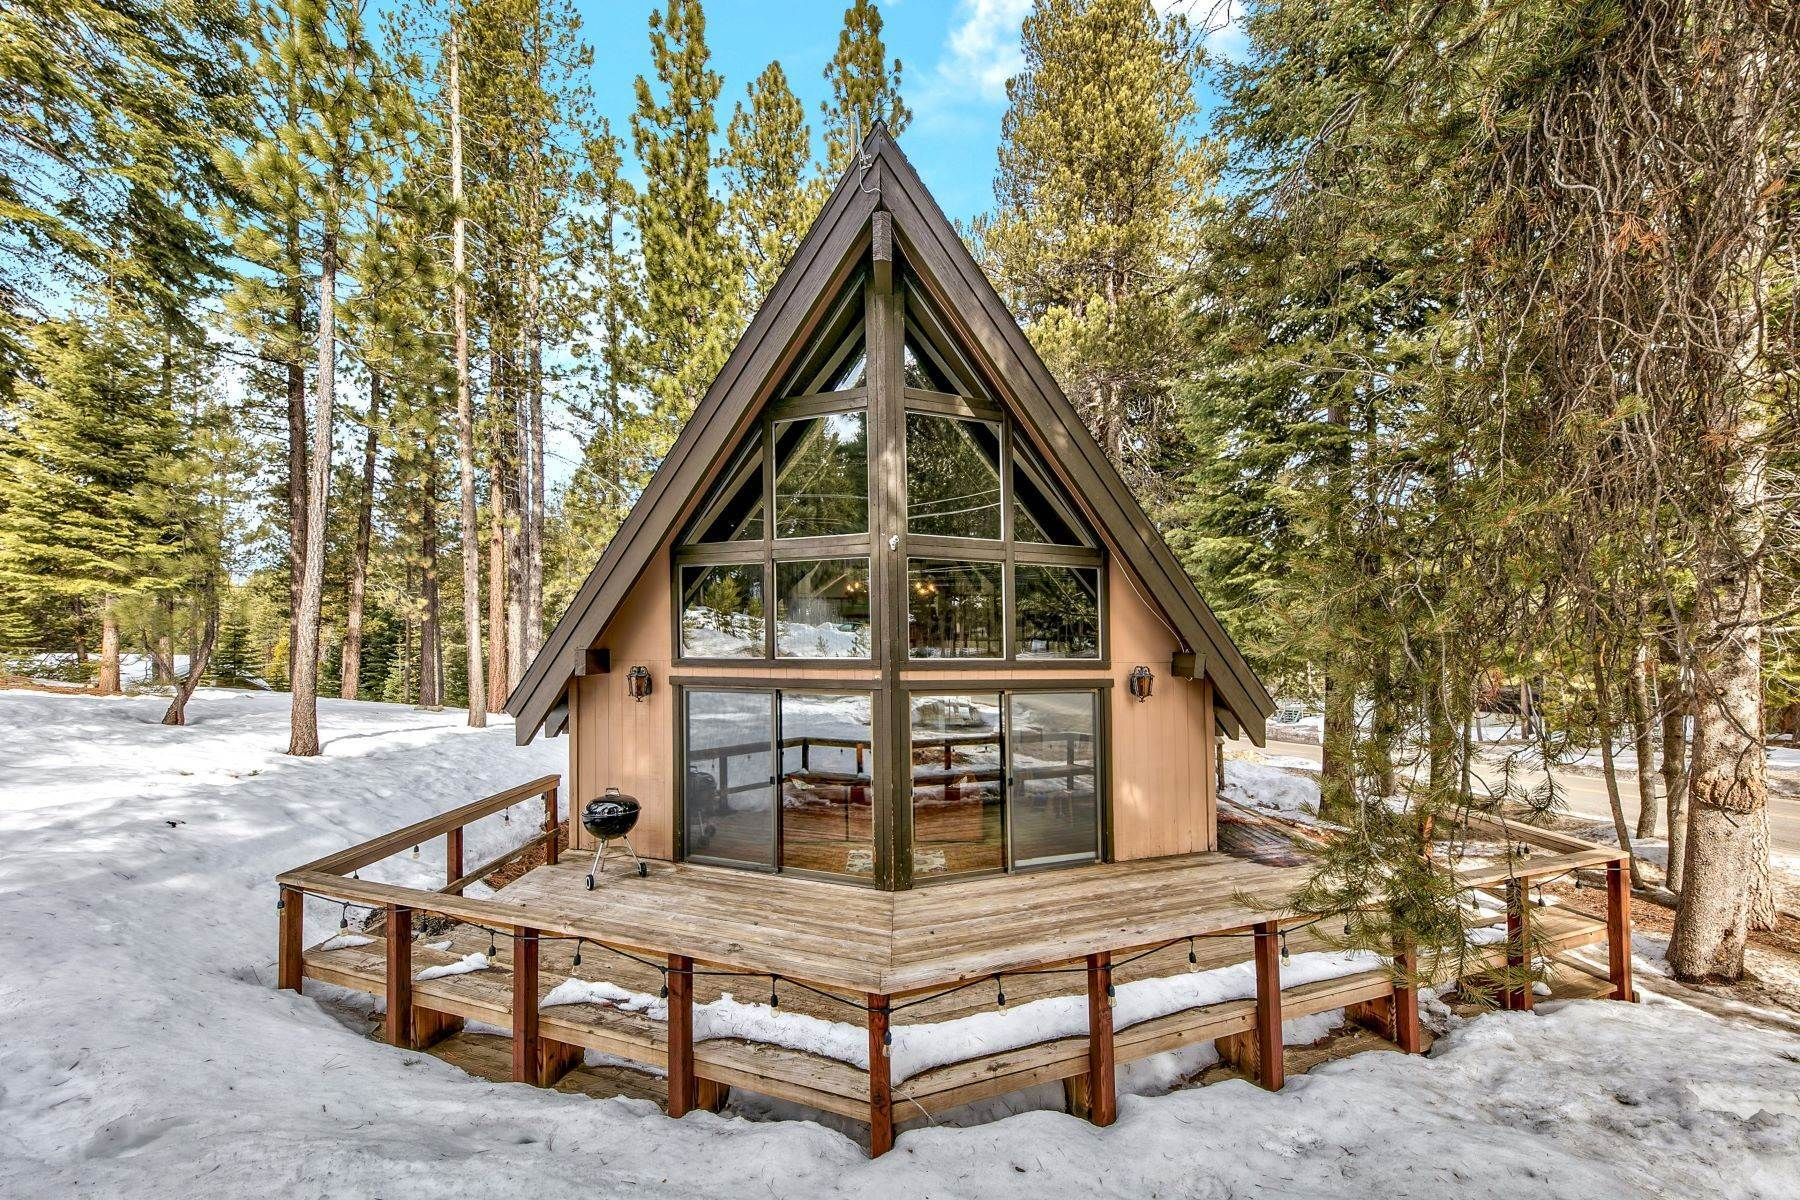 Single Family Homes for Active at South Shore A-Frame 1788 Mandan Street South Lake Tahoe, California 96150 United States